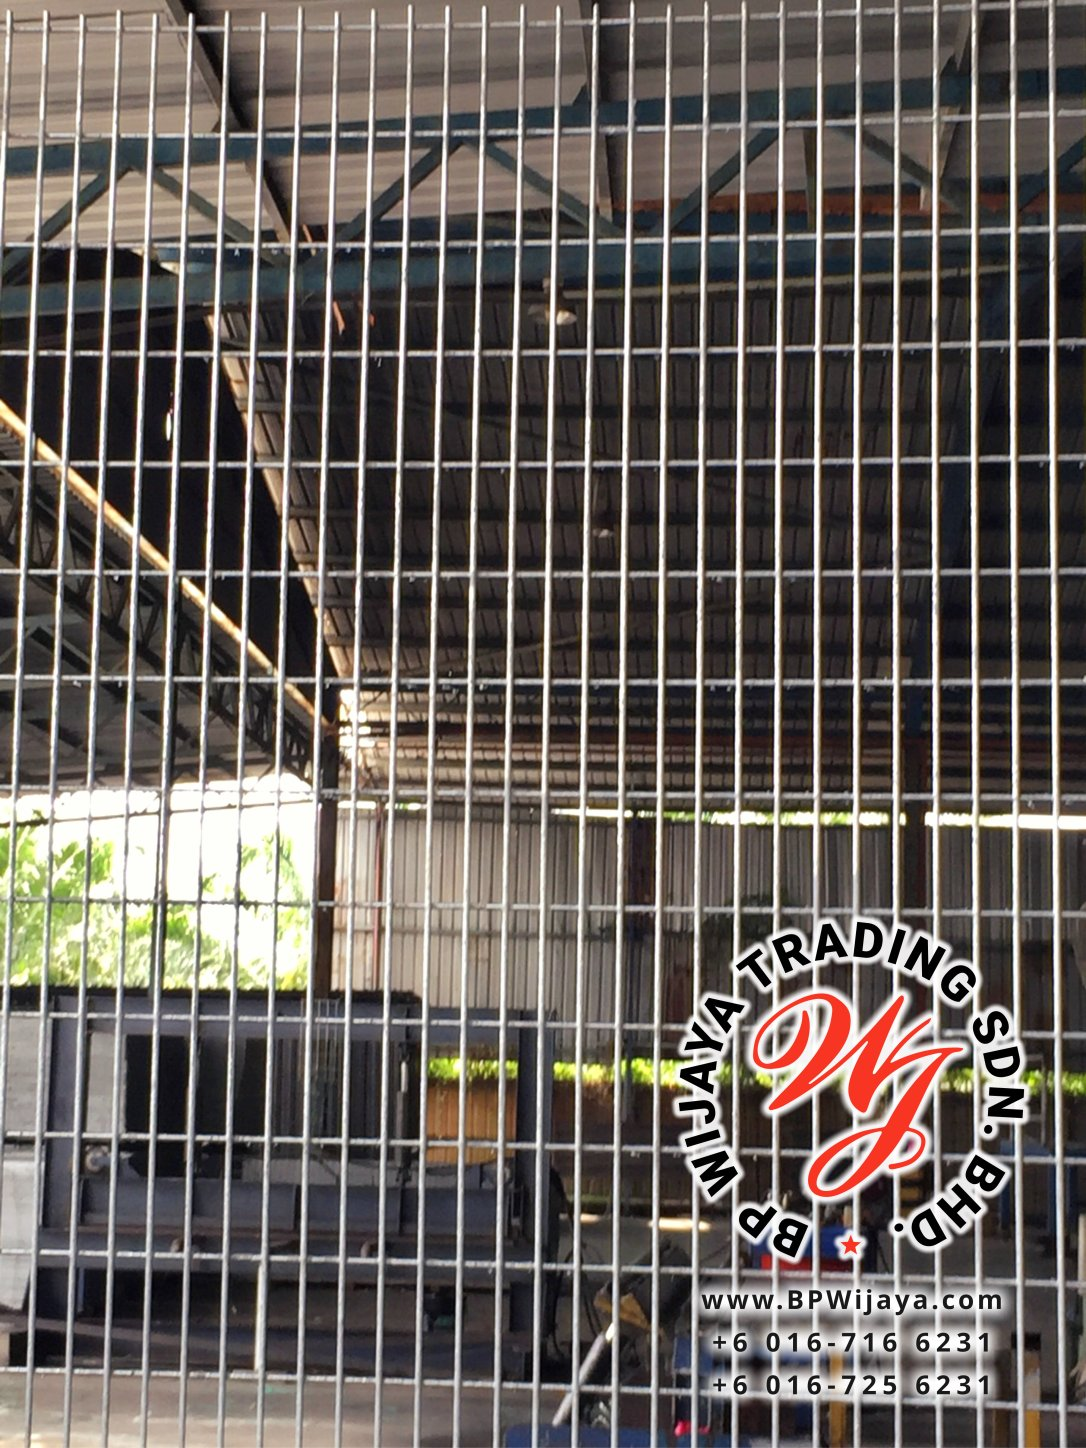 BP Wijaya Trading Sdn Bhd Malaysia manufacturer Distributor safety fences building materials Anti Climb Fence ACF 25 Mesh Wire Fence ACF Fence BRC from Johor Batu Pahat B04